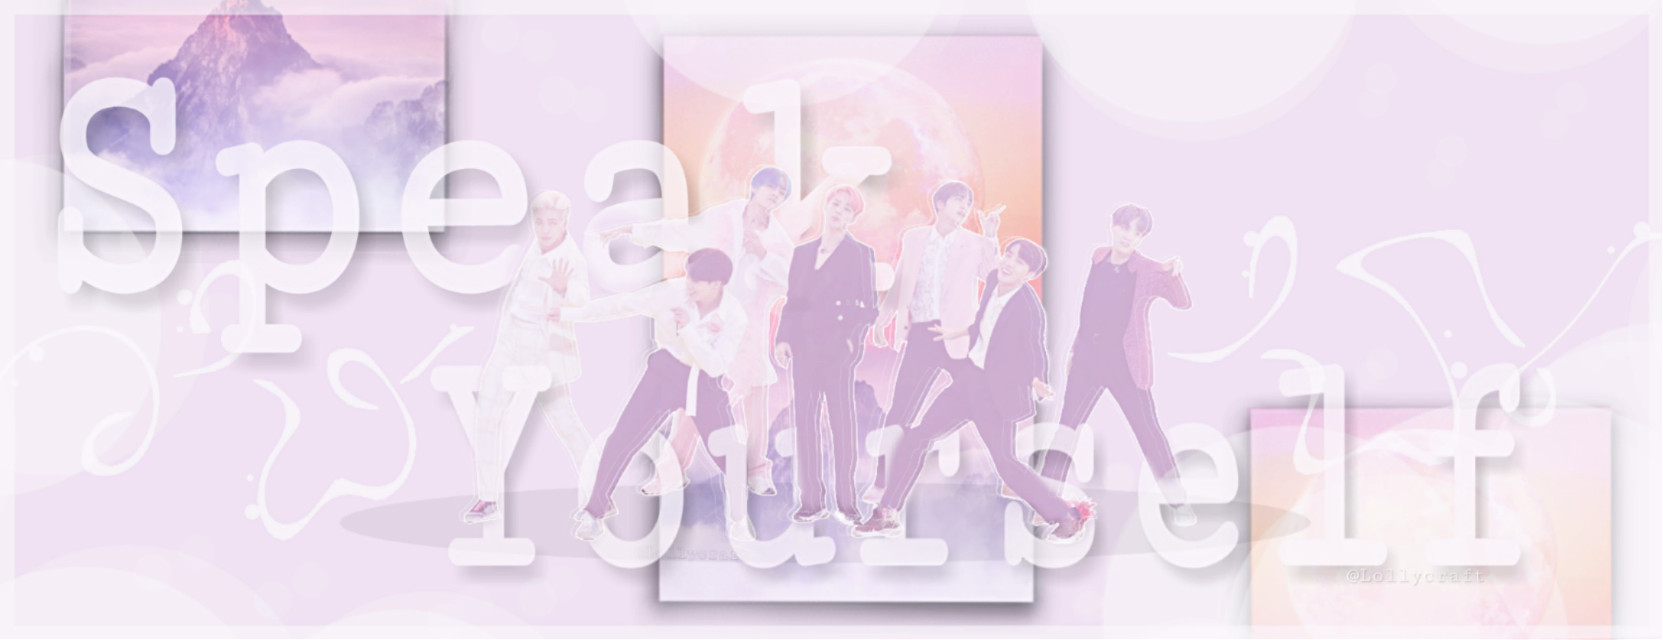 BTS concert banner - opinions?😉  Hey guys! What do you think of this banner? - I've put so much effort in it and spend like 3 hours to decide what to do with the words(I'm so bad at adding words to edits😂 = MeBeingDumb™ ).  💕 Would it be worth being printed and taken with me to the concert? I'm waiting for your opinions (E.g.-needs more color, meh, don't you dare print it) 😂 💕  PS-the original has a way better quality  Hope you like it too 😊💜  #bts #poster #concert #kpop #banner #speakyourself